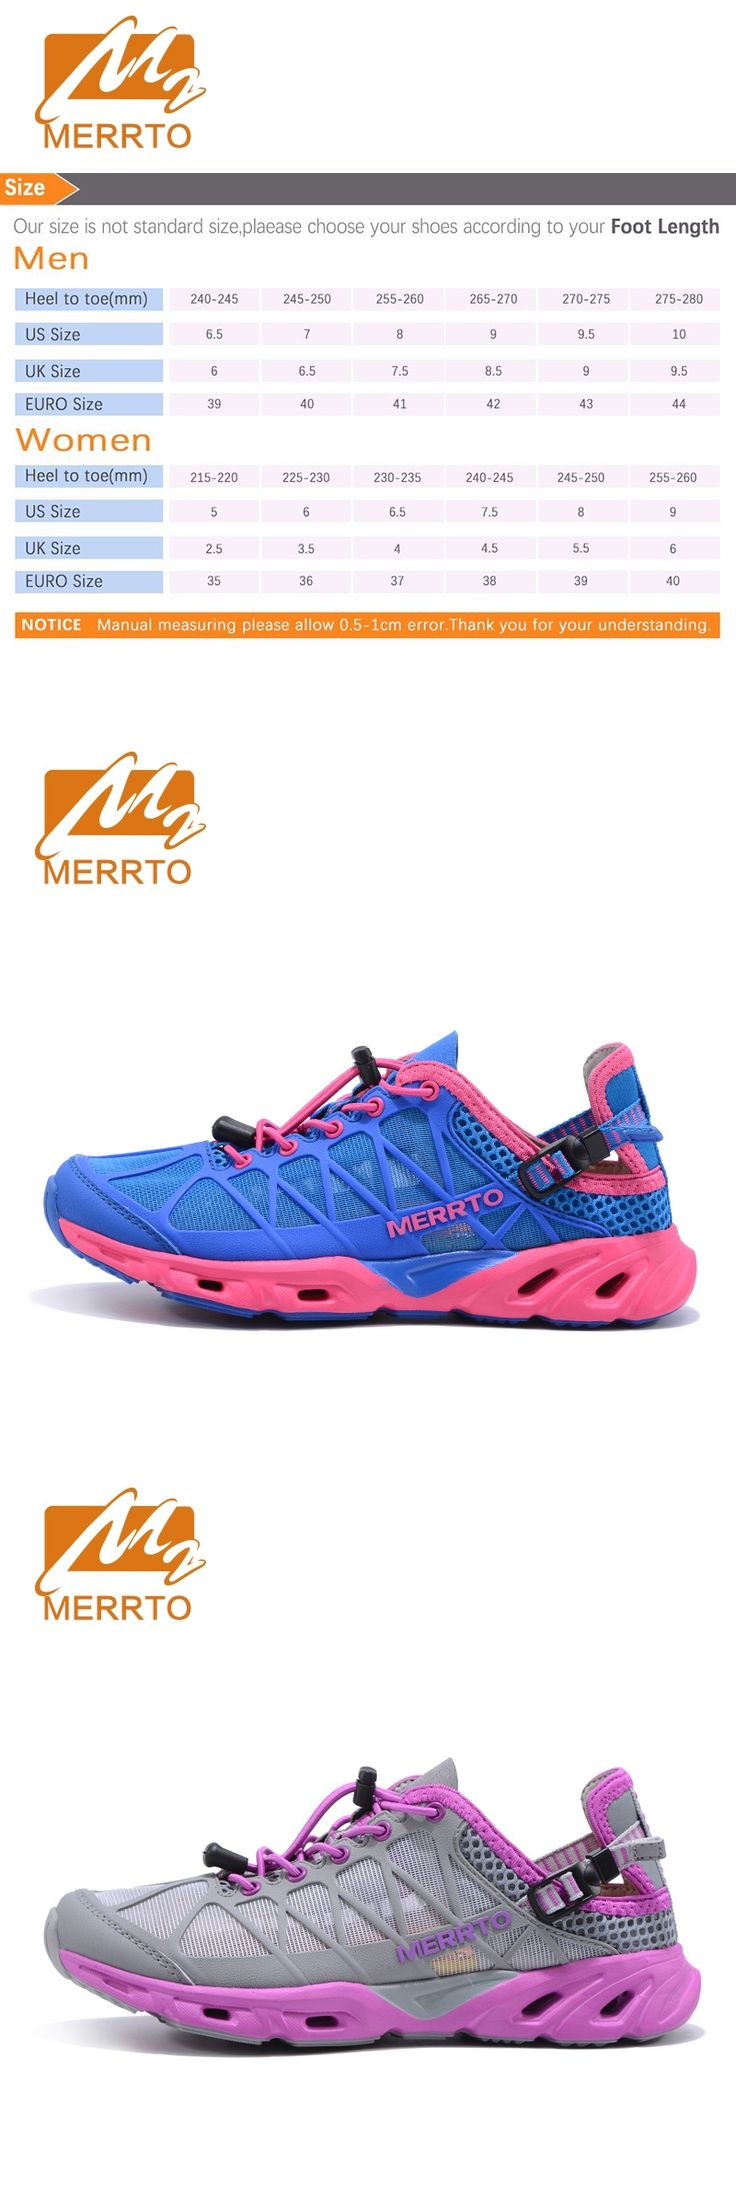 MERRTO Brand  lifestyle lace-up Mesh outdoor  running sport shoes  for  Women breathable and  comfortable  sneakers#MT18675